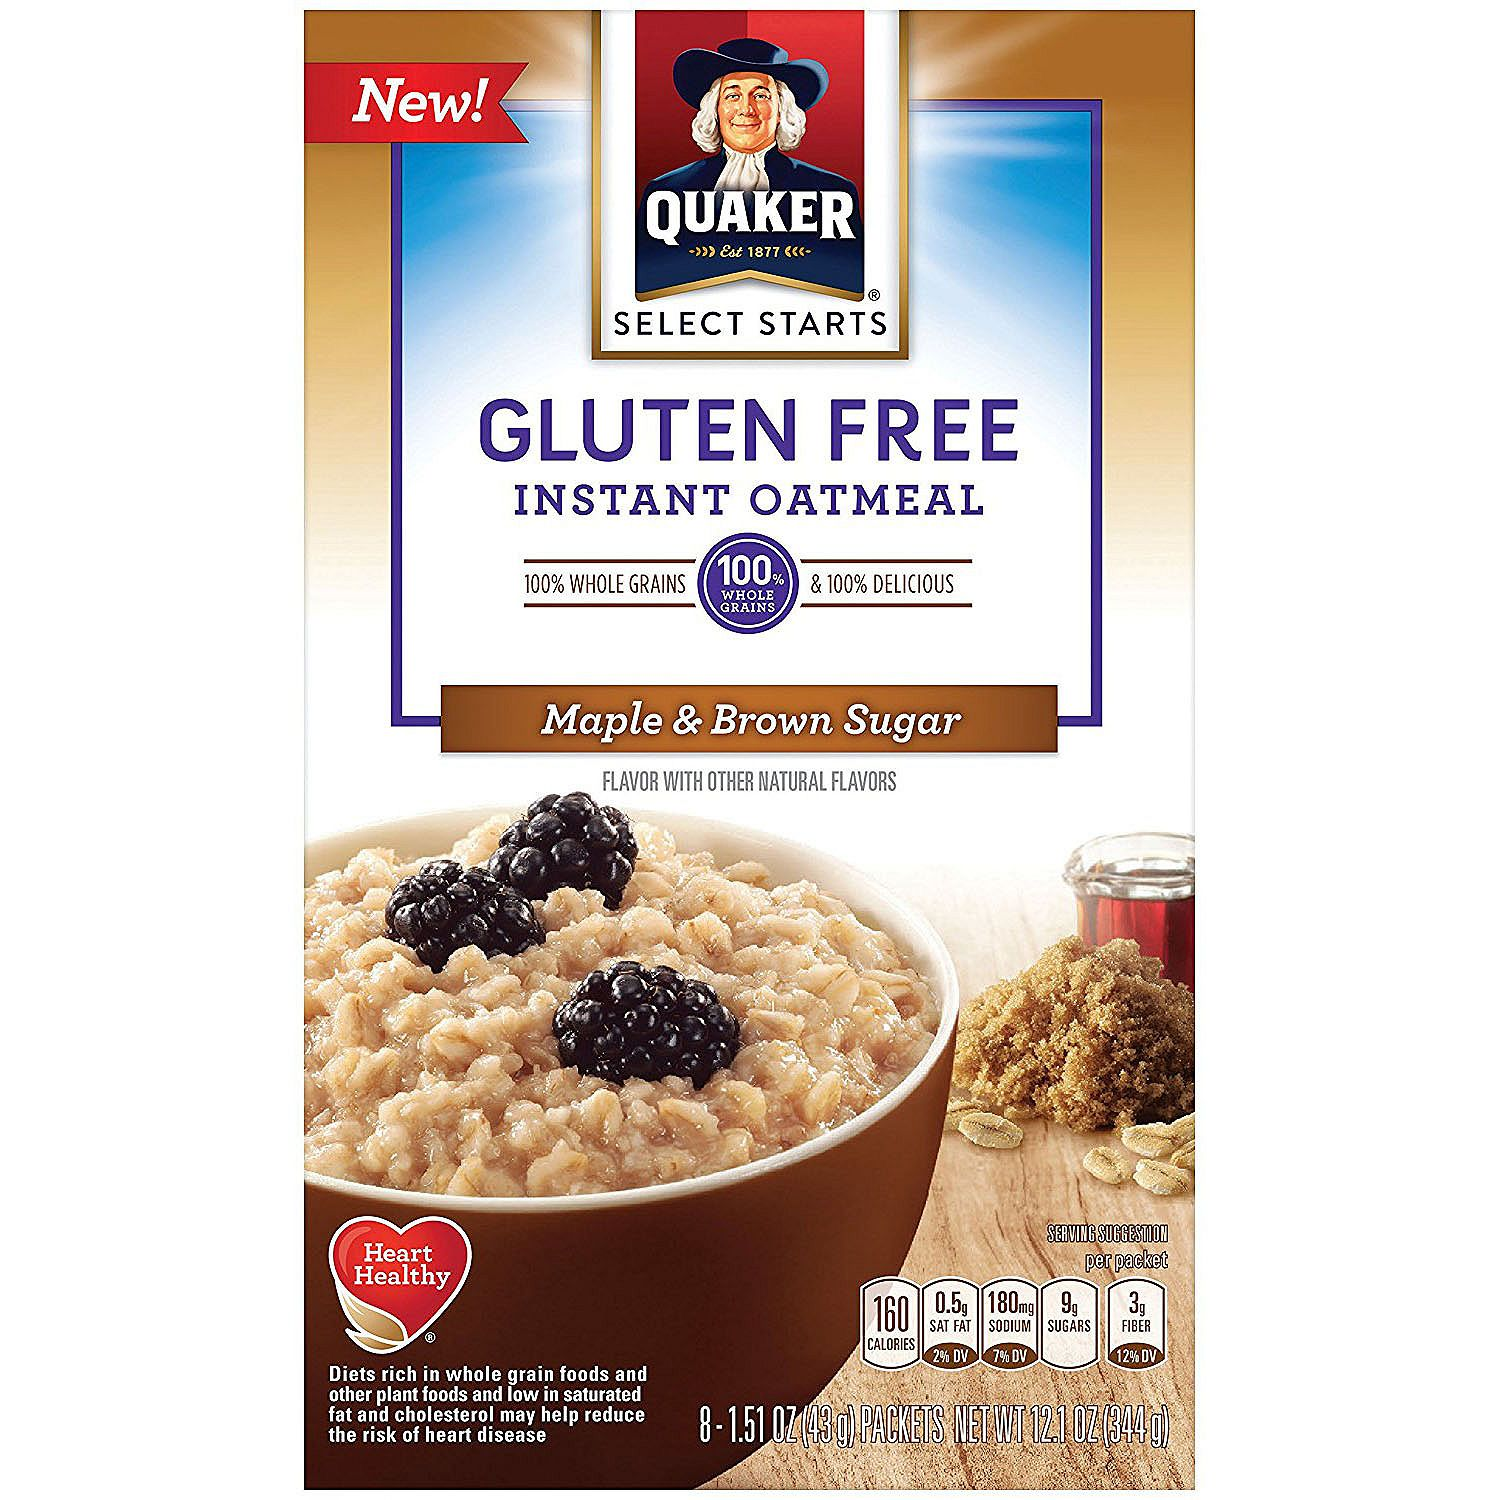 Quaker Gluten-Free Instant Oatmeal, Maple and Brown Sugar (8 pouches per box, 6 boxes)